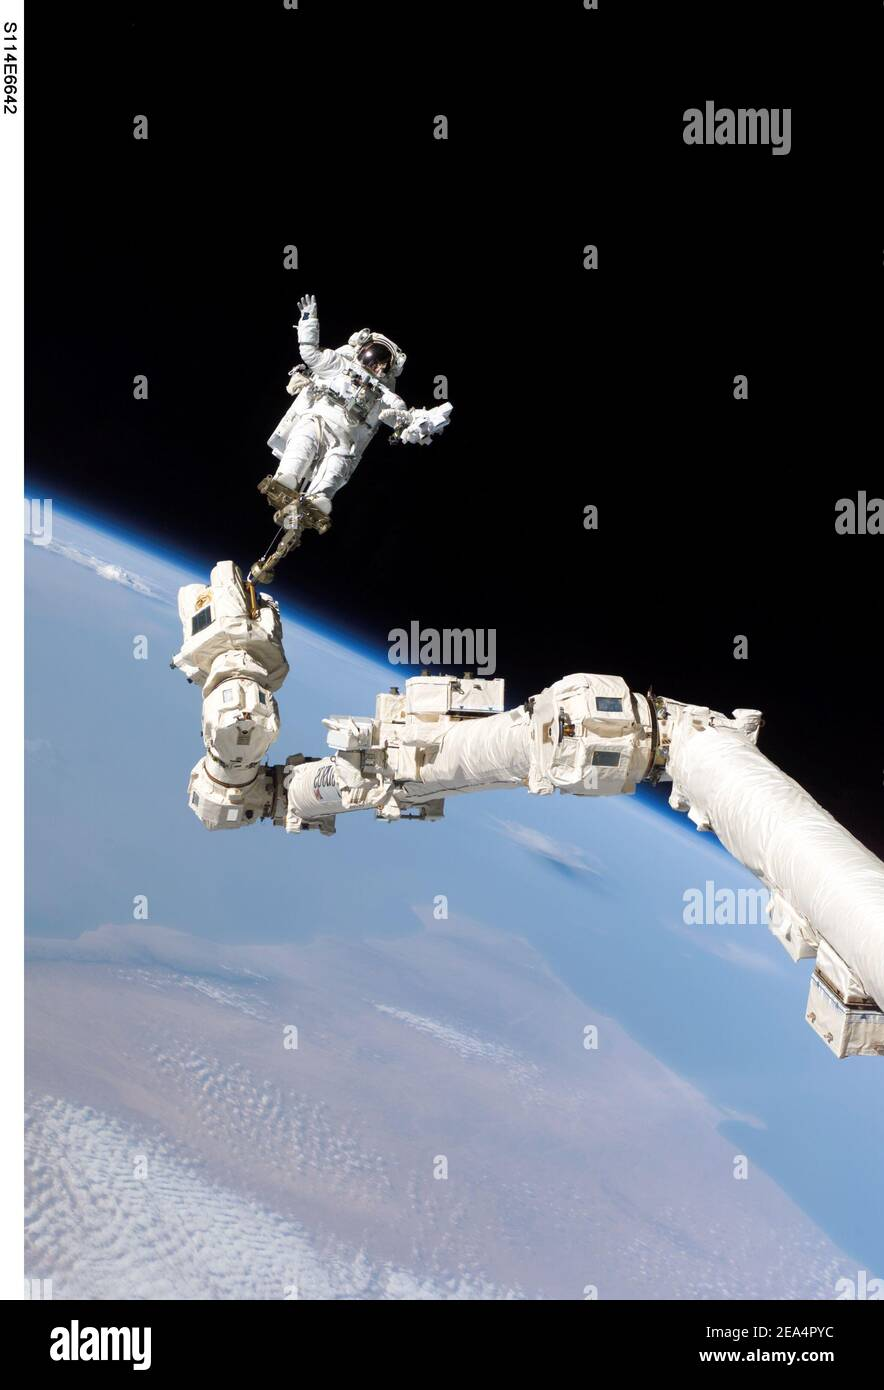 Astronaut Stephen K. Robinson, STS-114 mission specialist, anchored to a foot restraint on the International Space Station Canadarm2, participates in the missions third session of extravehicular activity (EVA) on August 3, 2005. The blackness of space and Earths horizon form the backdrop for the image. Photo by NASA/ABACAPRESS.COM Stock Photo